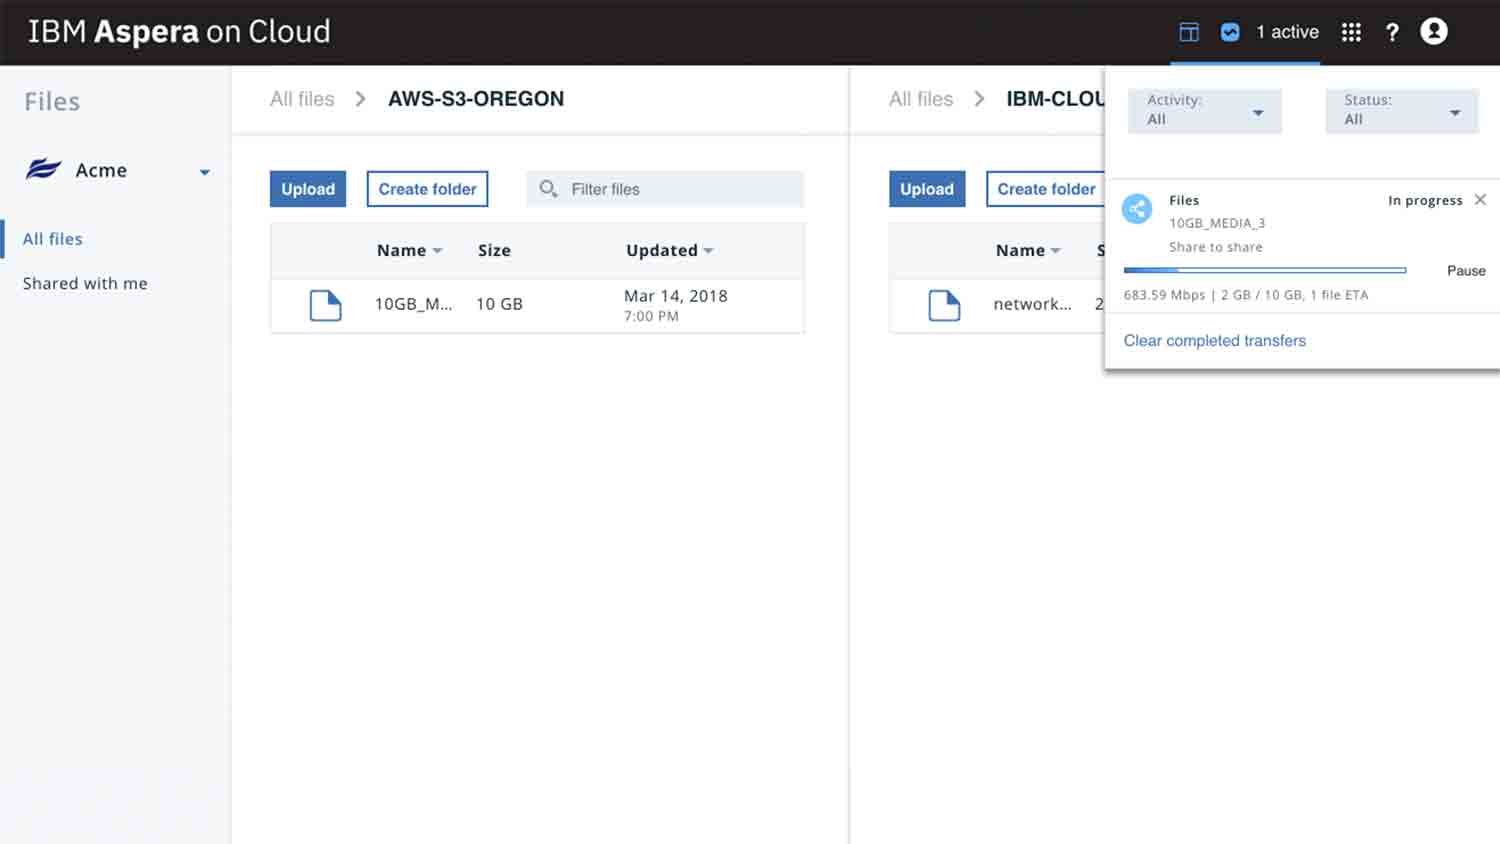 IBM Aspera – cloud file sharing